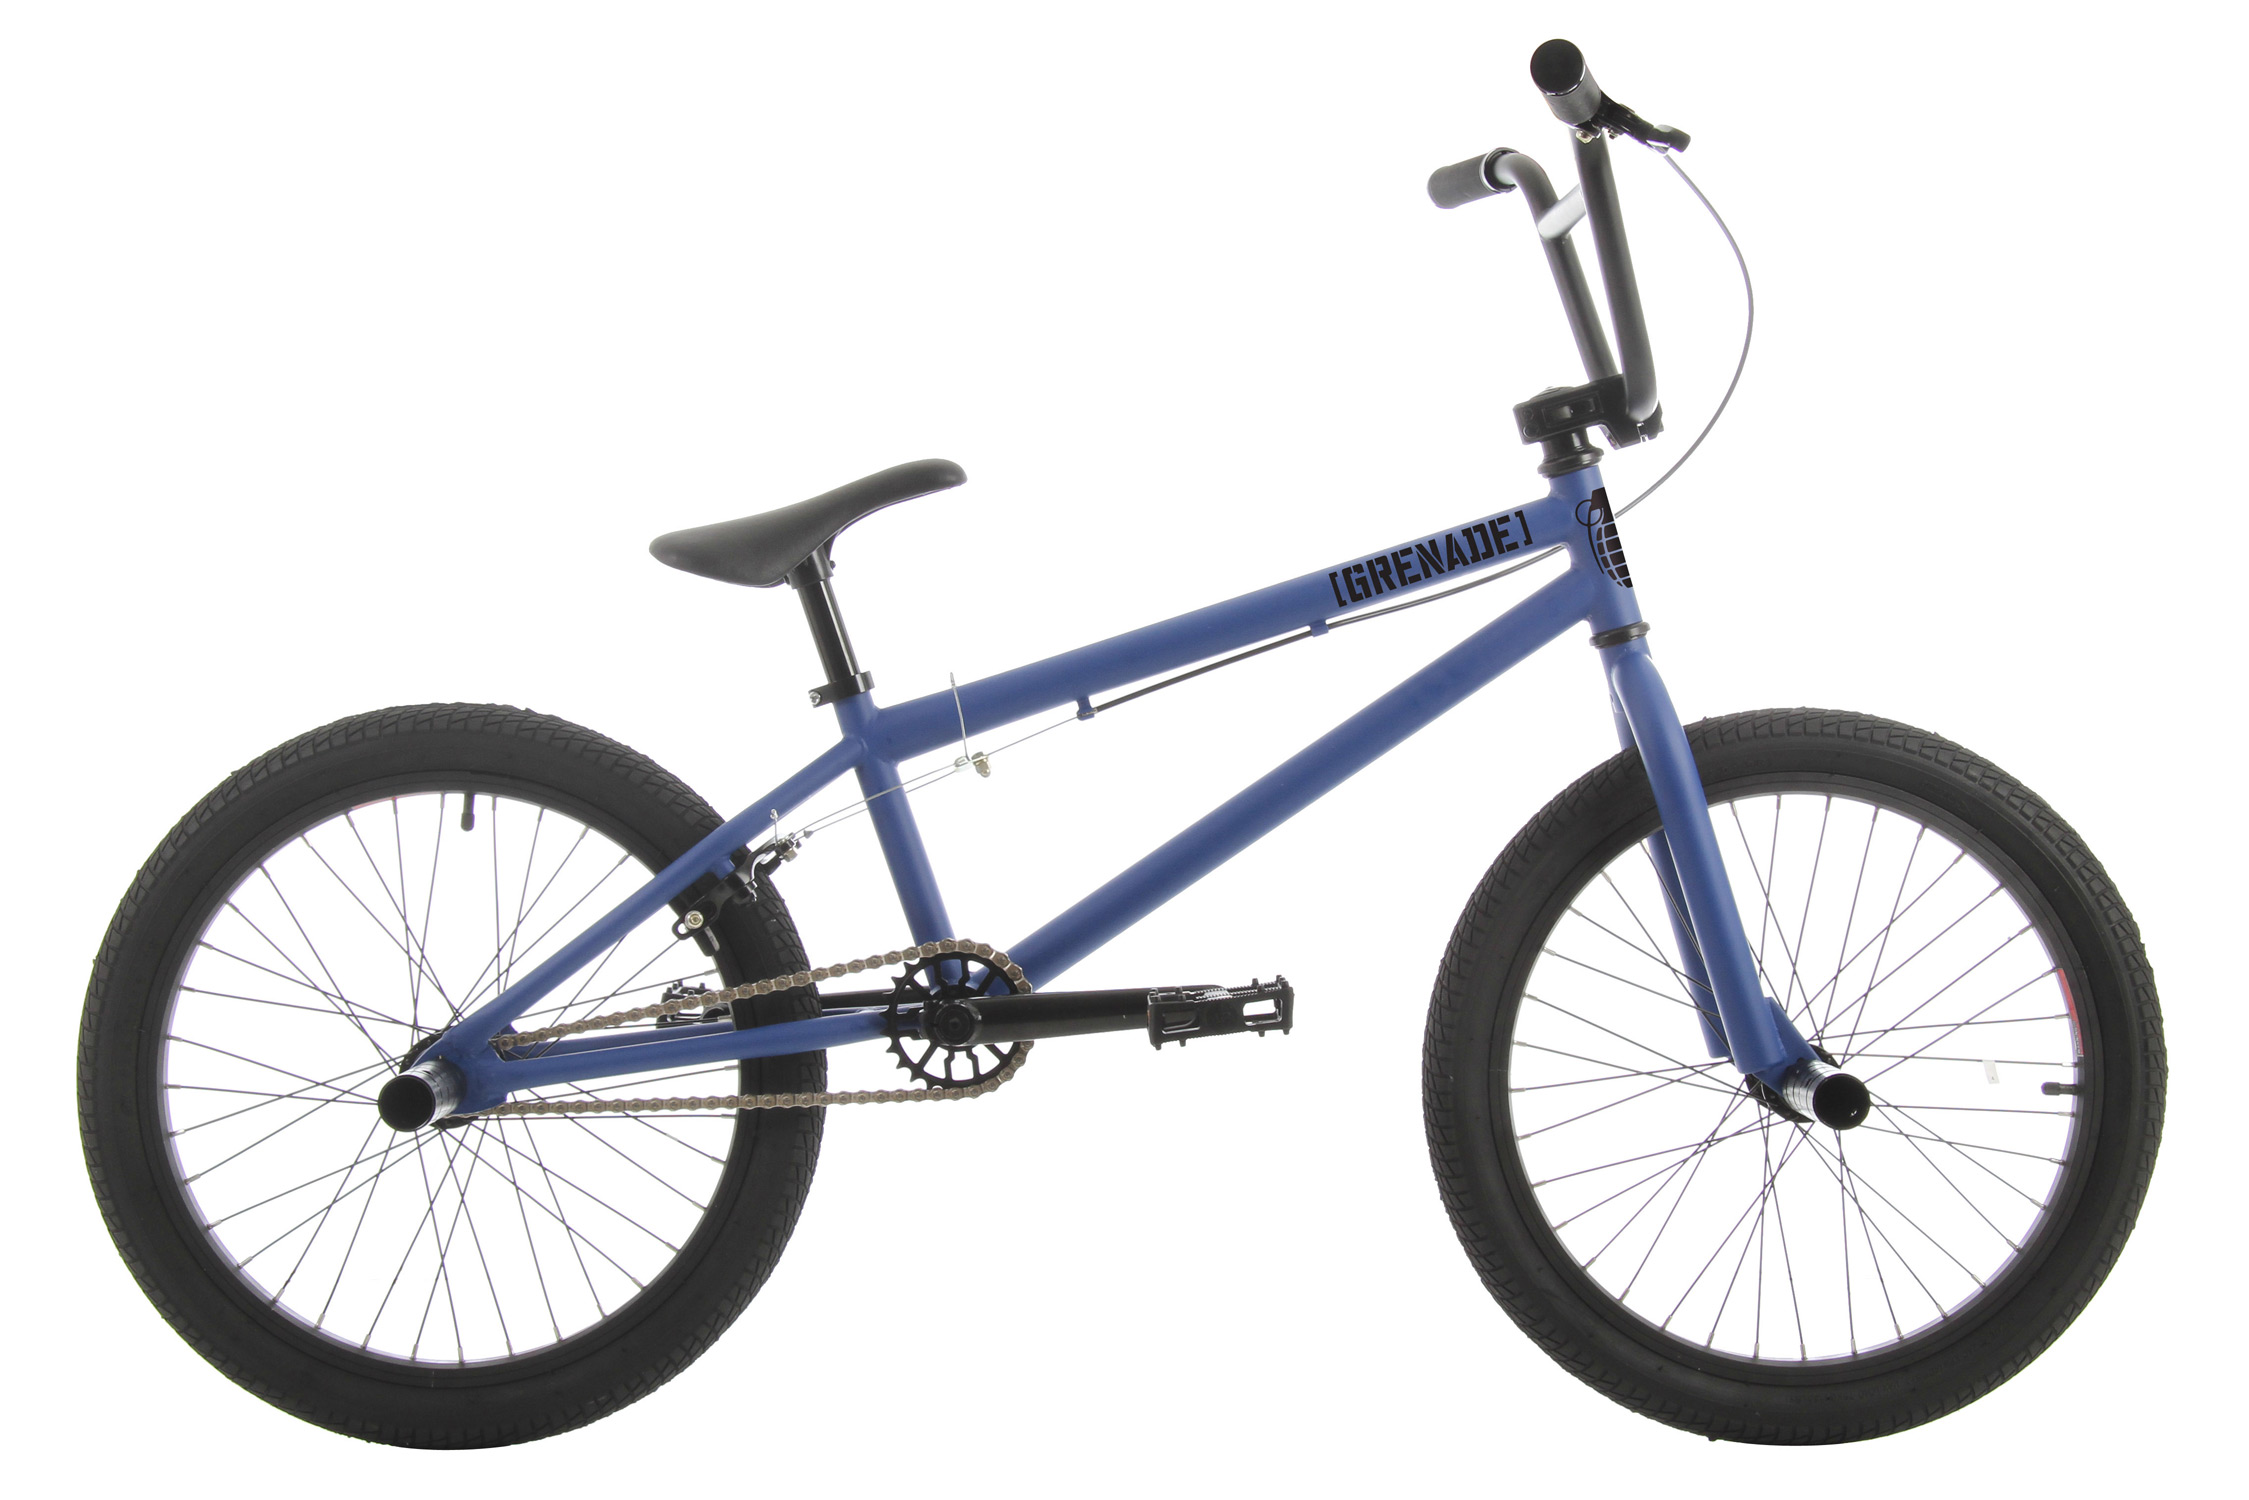 "BMX The 2012 Grenade Stealth is the top-of-the-line in Grenade's lineup of ""entry level"" street/ trail BMX bikes, but as you can see, the Stealth is not your standard entry level bike with its 100% Cromoly Frame, Fork and Handlebar and 25/9 Micro Drive System and its features do not stop there. The Stealth features Framed Gun Grips with Alloy Grip Locks, Framed Detonator Alloy Stem with weight saving cut-outs, Framed Pipe Bomb 175mm Tubular Cromoly Cranks with Cromoly Spindle, Framed Mid Sealed Bottom Bracket, Framed 25 Tooth Alloy Sprocket, KMC HL710 Half Link chain, Framed Platform Pedals, Framed Cannon 14mm Alloy Hubset with a 9 Tooth Driver in the rear, Framed Flak Jacket Double Wall Alloy Rims, and Framed Launcher Saddle/ Post Combo Seat for weight reduction. The Grenade Stealth Bike is as at home on the street as it is on the trails, with its agile but stable geometry and its quality packed components.These Grenade BMX bikes come without decals applied. Each bike is shipped with a decal packet, containing a number of decals of different styles and colors. This allows the rider to customize the bike to their liking.    Key Features of the Grenade Stealth BMX Bike 20"":  FRAME: 100% CroMo with 20.4"" Top Tube  FORKS: 100% CroMo Forks  BARS: 100% CroMo 8"" Rise Bars  GRIPS: Framed Gun Grips with Grip Locks  STEM: Framed Detonator Alloy Stem with Cutouts  HEADSET: 1 1/8"" Threadless Headset  BRAKE LEVER: Framed Alloy Lever  BRAKE: Framed Alloy U-Brakes  CRANKS: Framed Pipe Bomb 175mm Tubular CroMo Cranks with Sealed Bottom Bracket  SPROCKET: Framed 25 Tooth Alloy Sprocket  CHAIN: KMC Half Link HL710  PEDALS: Framed Platform Pedals  FRONT HUB: Framed Cannon 14mm 36 Hole Alloy Hub  REAR HUB: Framed Cannon 14mm 36 Hole Alloy Hub with 9 Tooth Driver  RIMS: Framed Flak Jacket Double Wall Alloy Rims  TIRES: Framed WD 20"" X 2.125"" Tires  SADDLE: Framed Launcher Saddle/ Post Combo  SEAT POST: Framed Launcher Saddle/ Post Combo  CLAMP: Framed Alloy Clamp  PEGS: Framed Steel Pegs (2 PCS   TOP TUBE: 20.4""  HEAD TUBE ANGLE: 74deg  SEAT TUBE: 9.5""  SEAT TUBE ANGLE: 71deg  CHAINSTAY: 14""  BB HEIGHT: 11.6""  APPROX WEIGHT: 25 lbs  WHEELBASE: 36.25"" - $269.95"